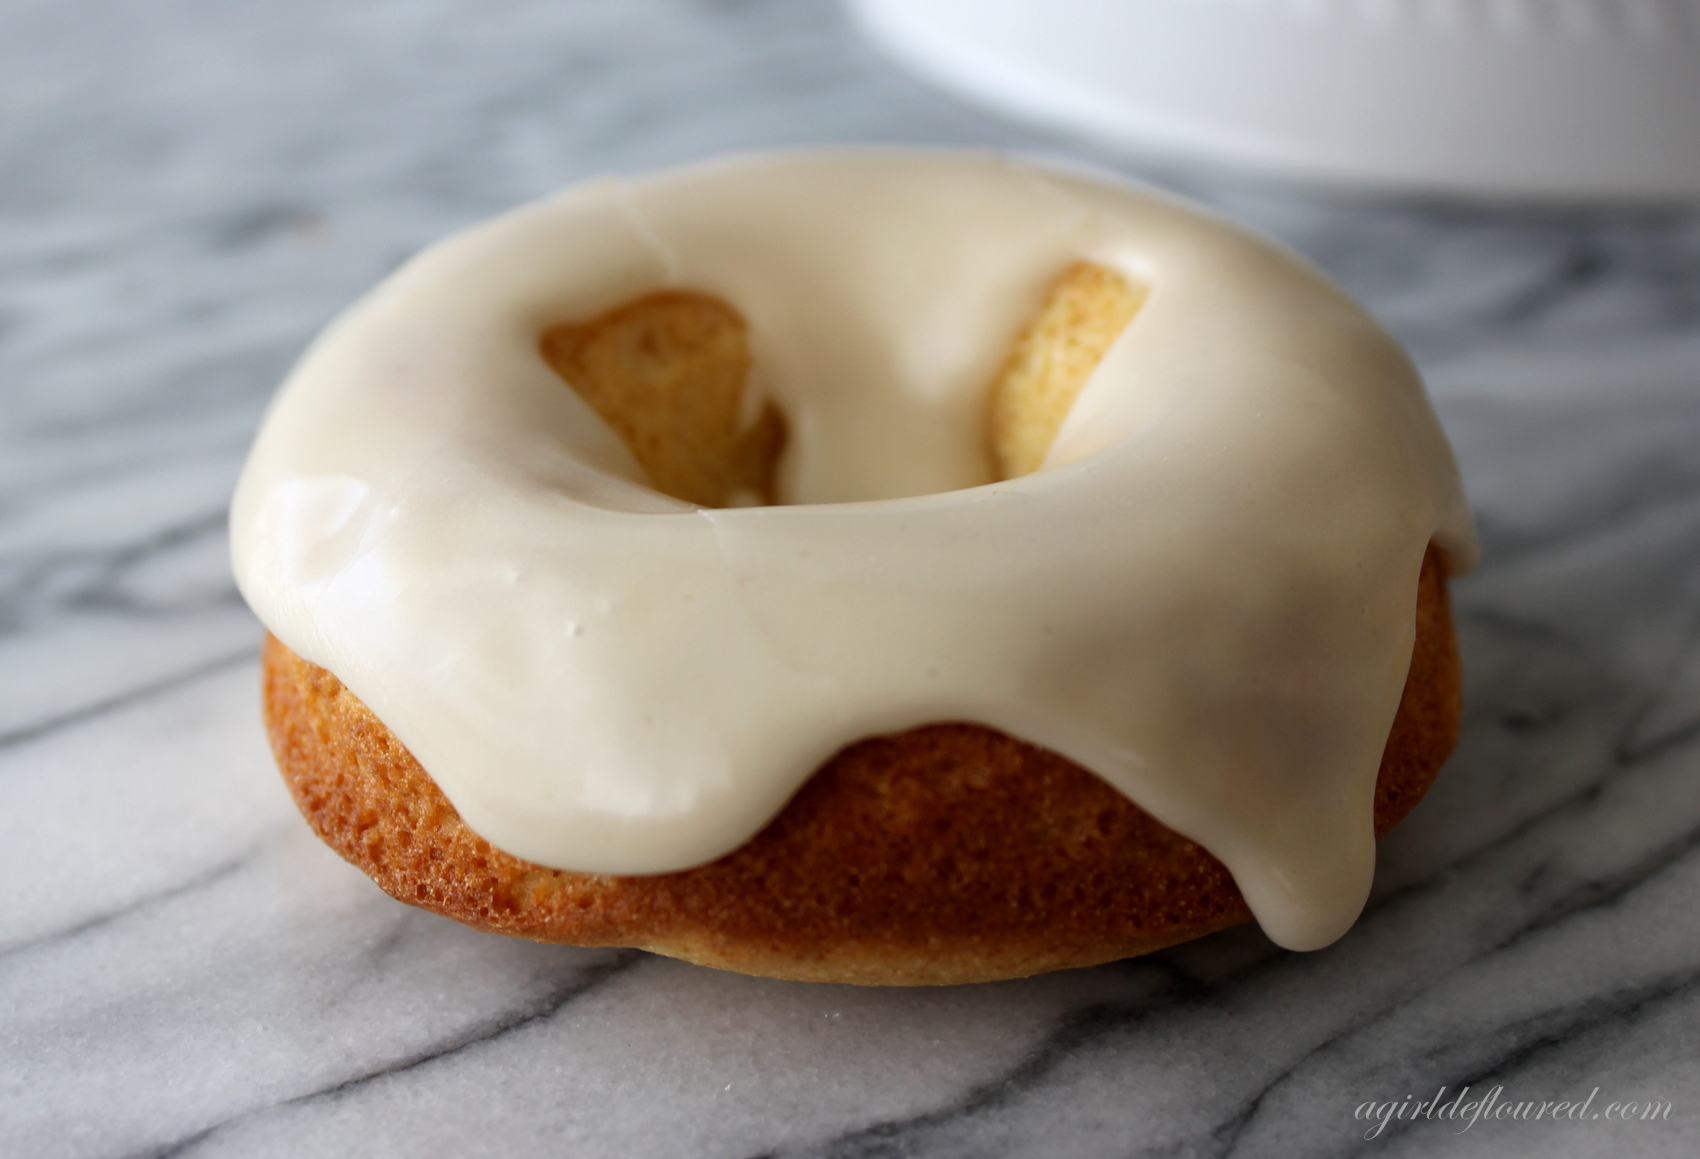 Gluten Free Baked Maple Glazed Doughnuts